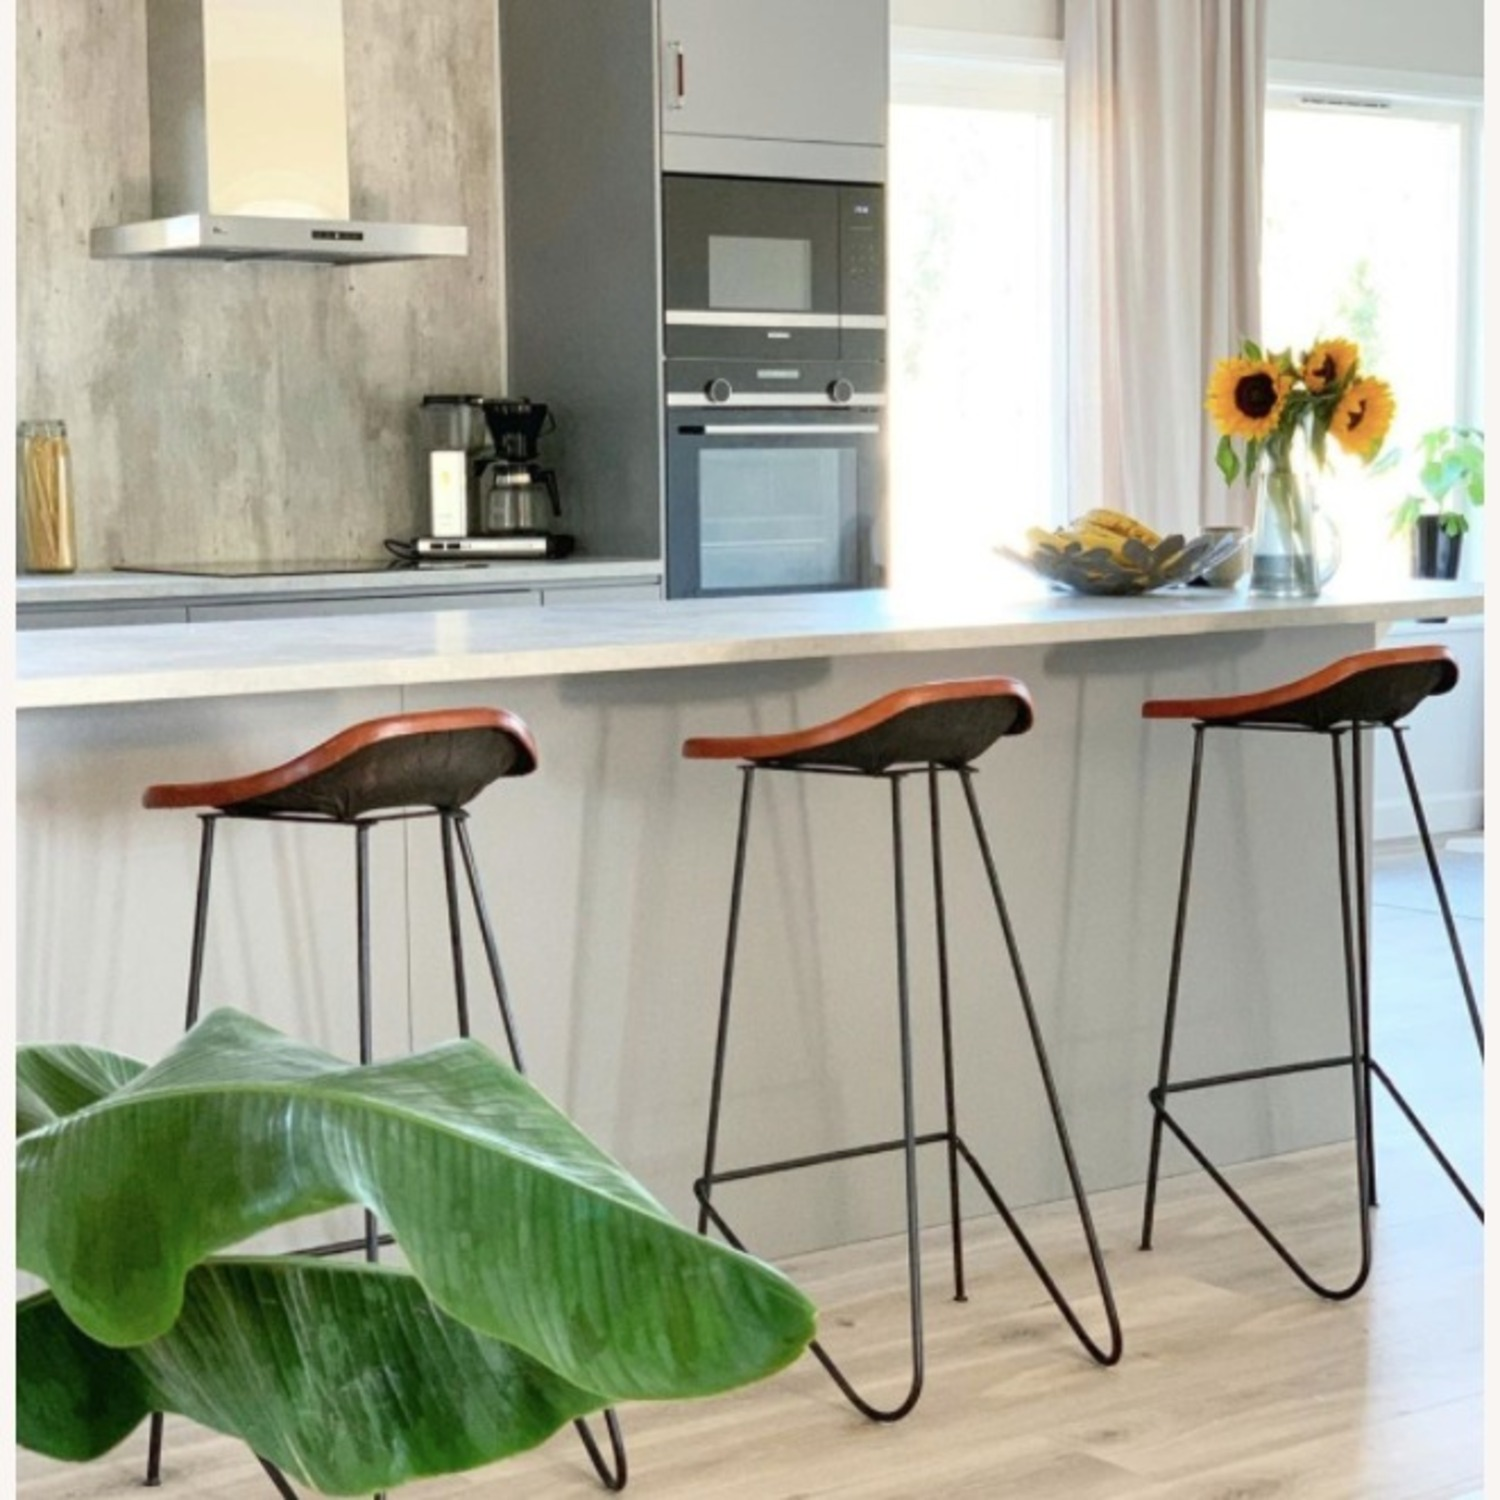 Mid Century Modern Set of 4 Brown Leather Stools - image-5